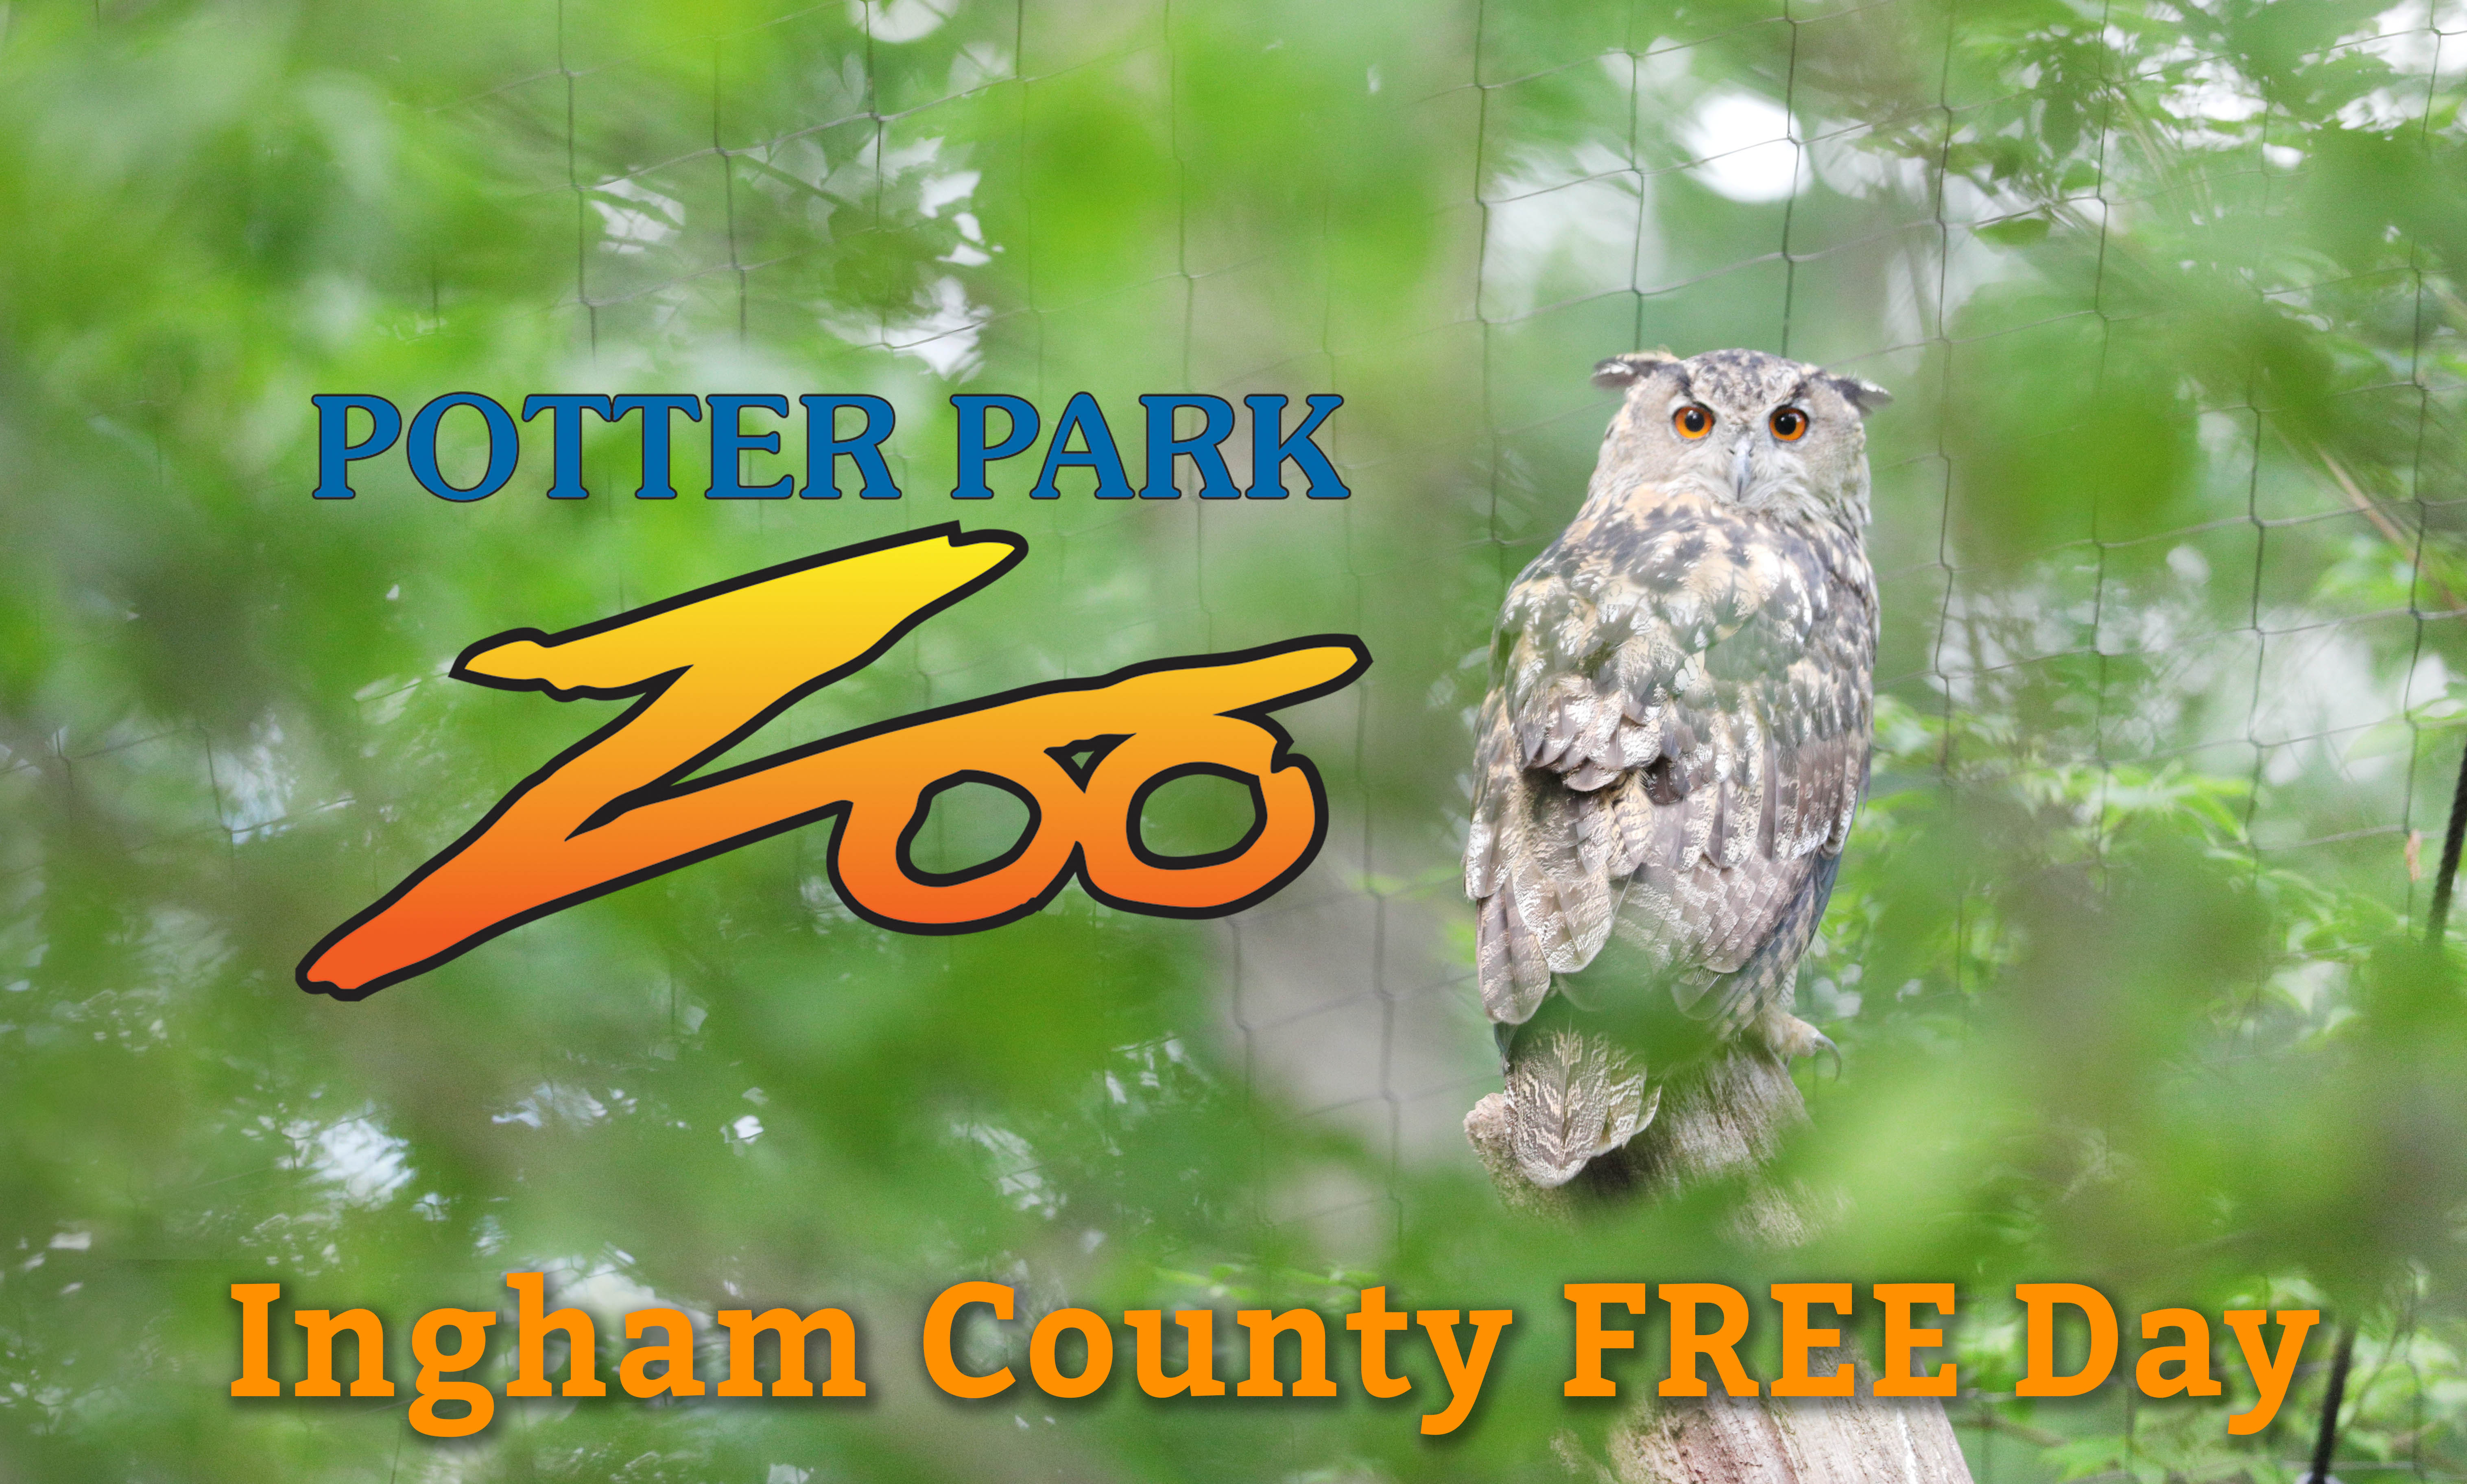 Potter Park Zoo Ingham County FREE Day banner